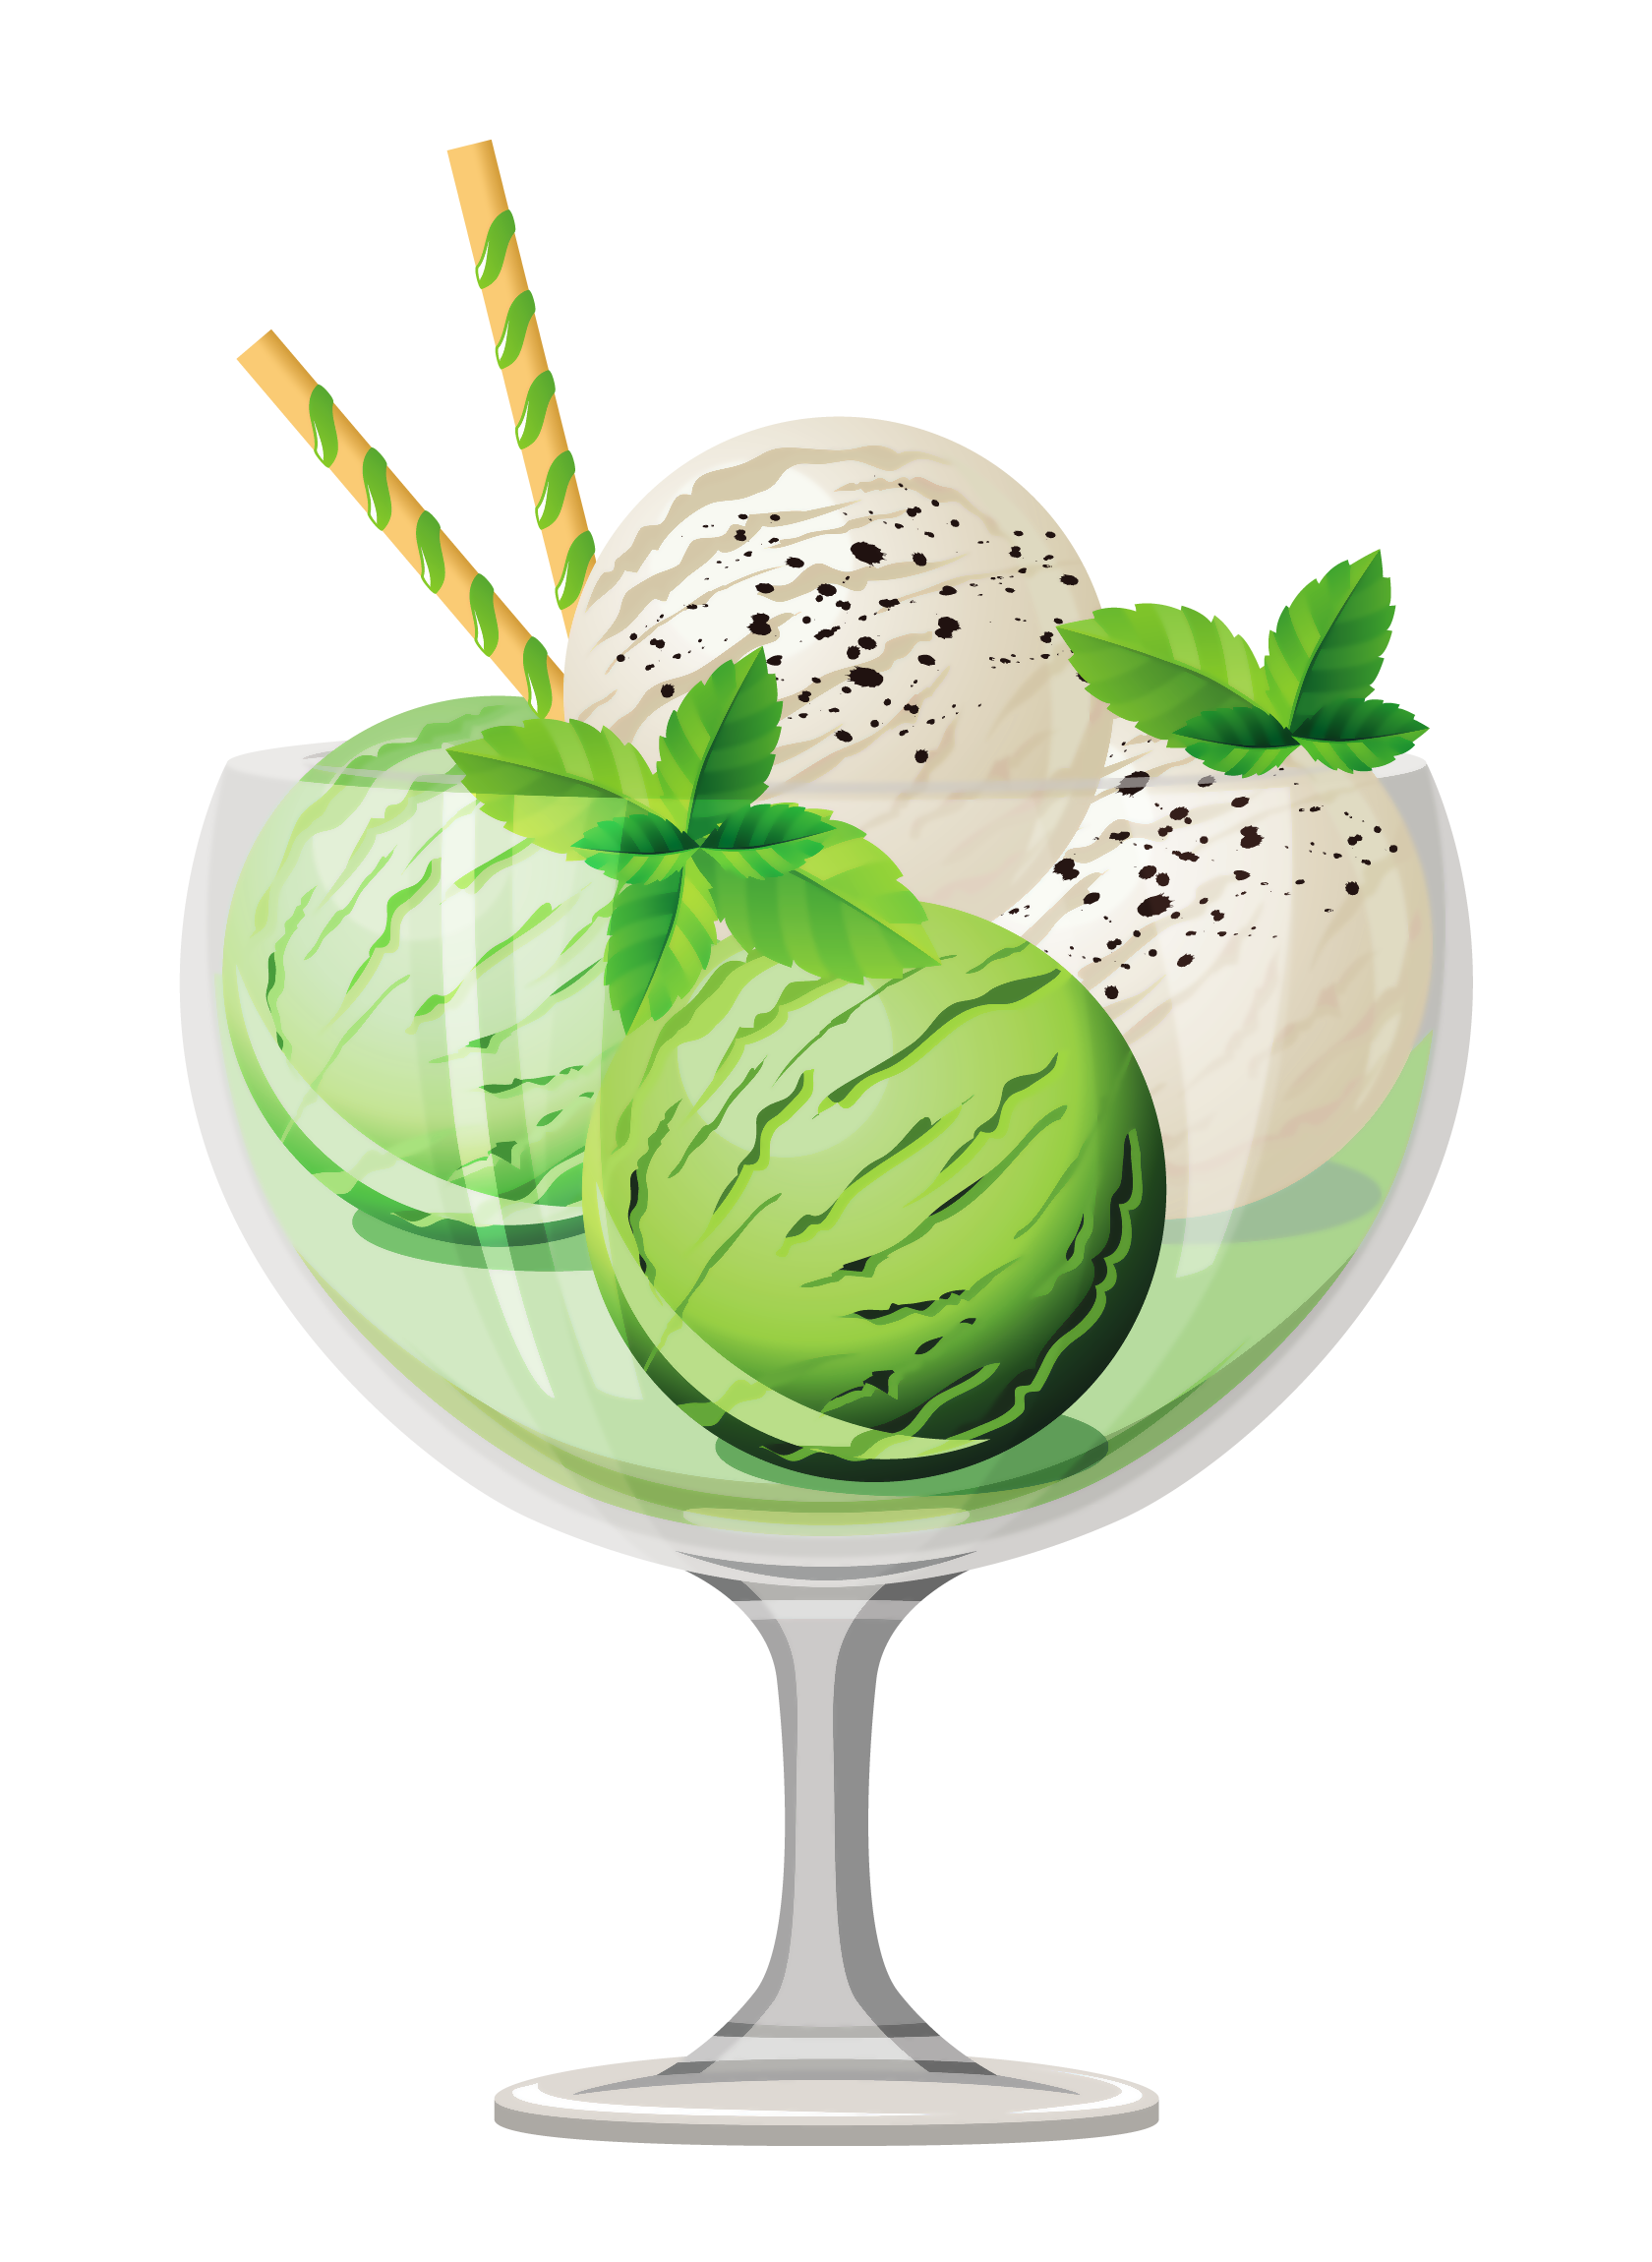 Mint clipart icecream Sundae Cream Transparent Yopriceville Picture